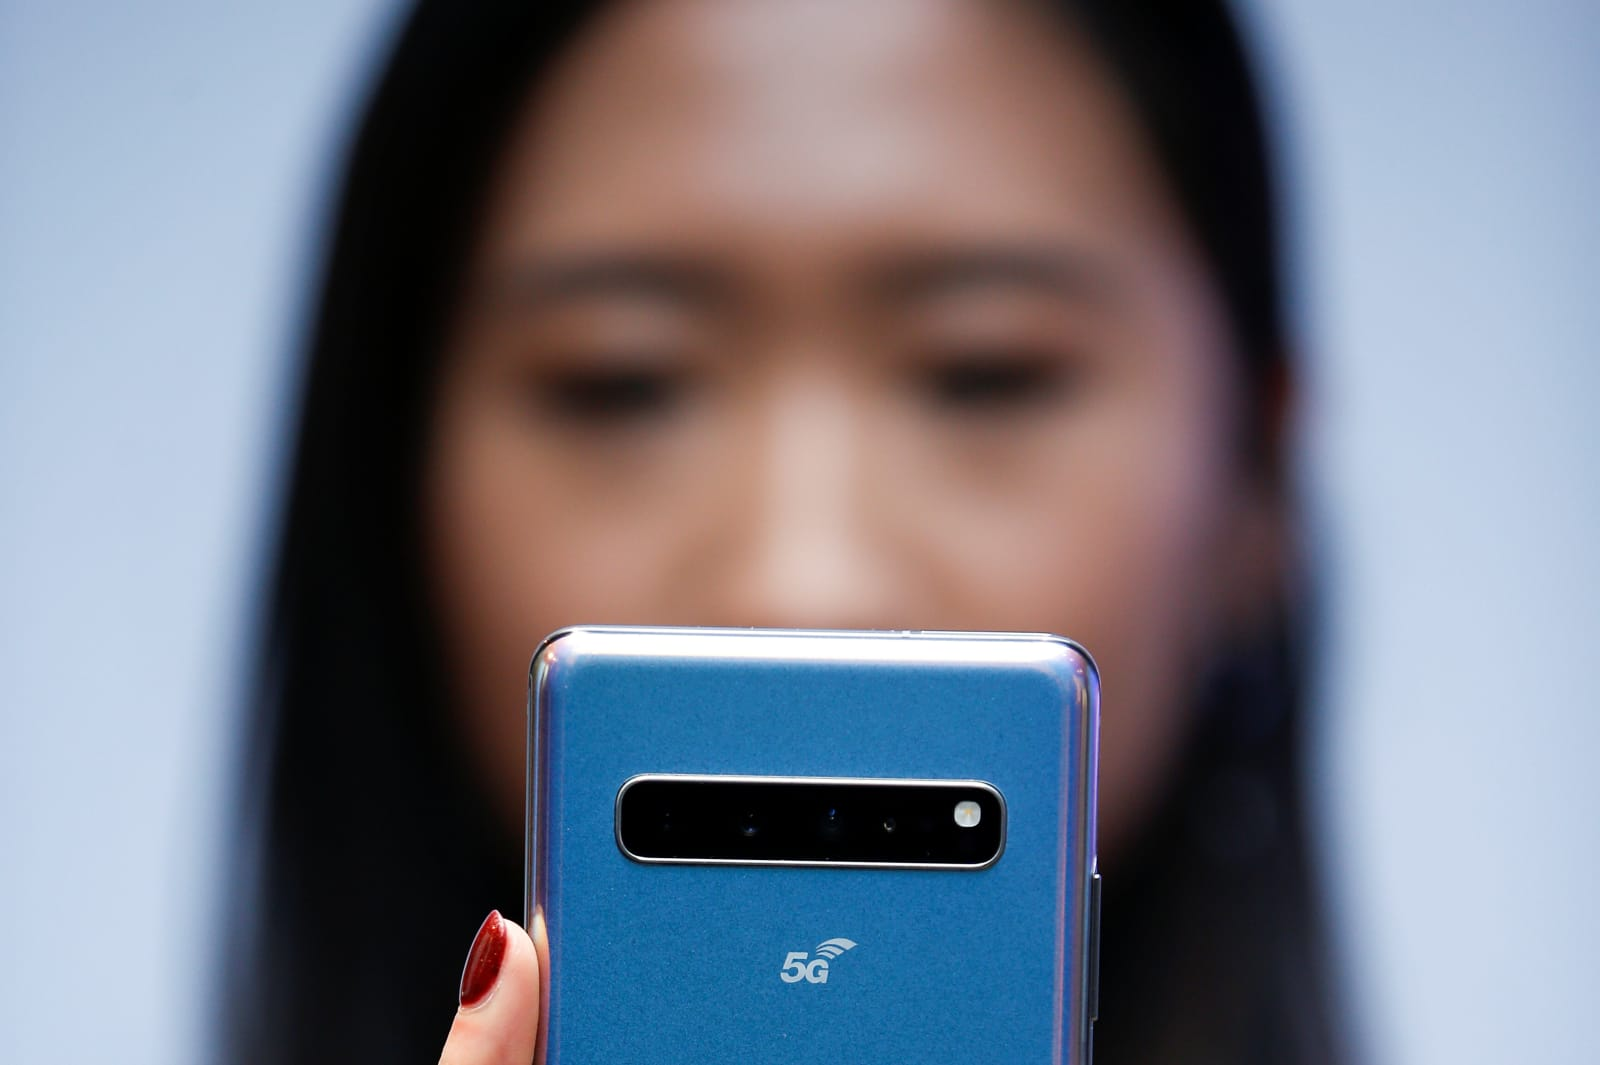 FCC loosens rules to make 5G available in lower frequencies